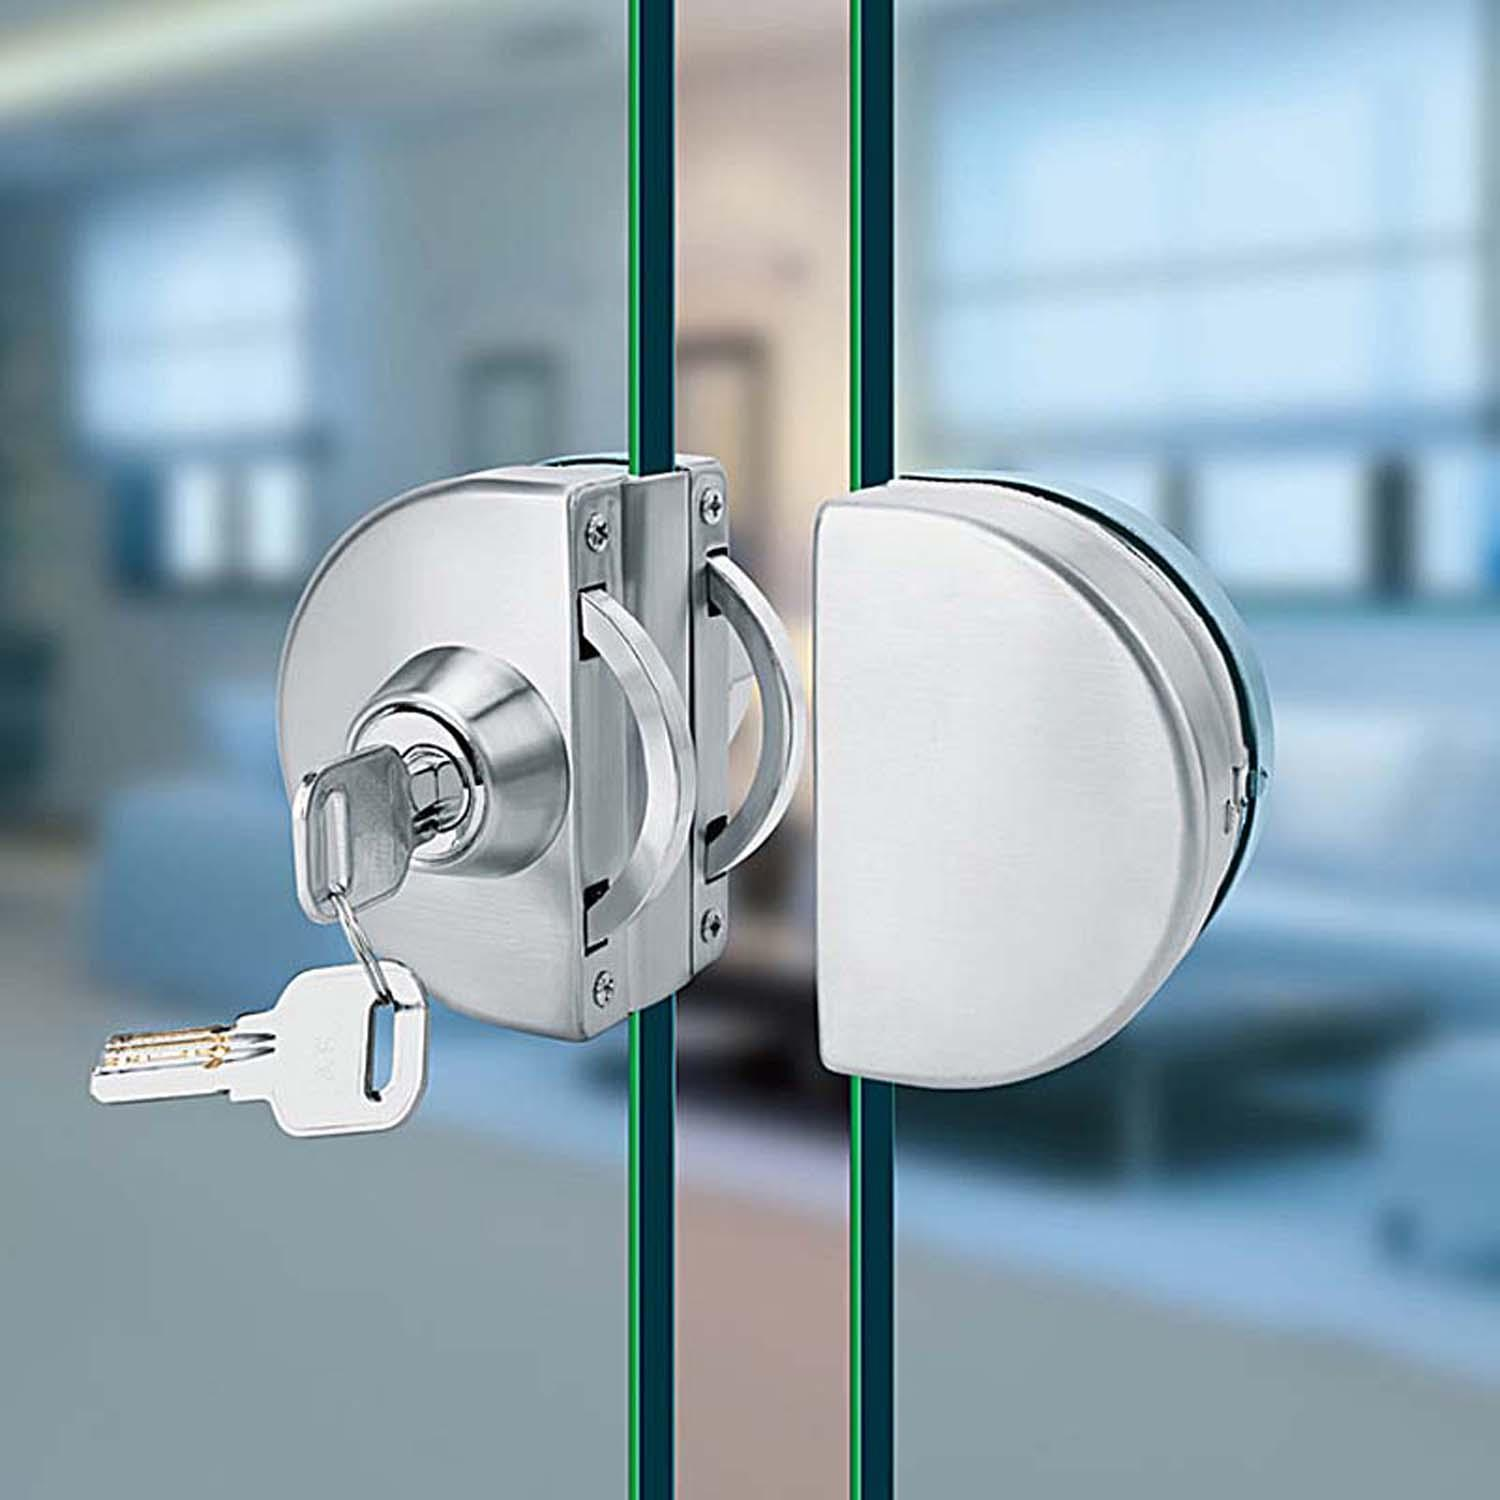 Gd03ss Glass Door Lock Stainless Steel Without Hole Bidirectional Unlock Key Knob Frameless With 21 72 Piece On Sunhouseindustry S